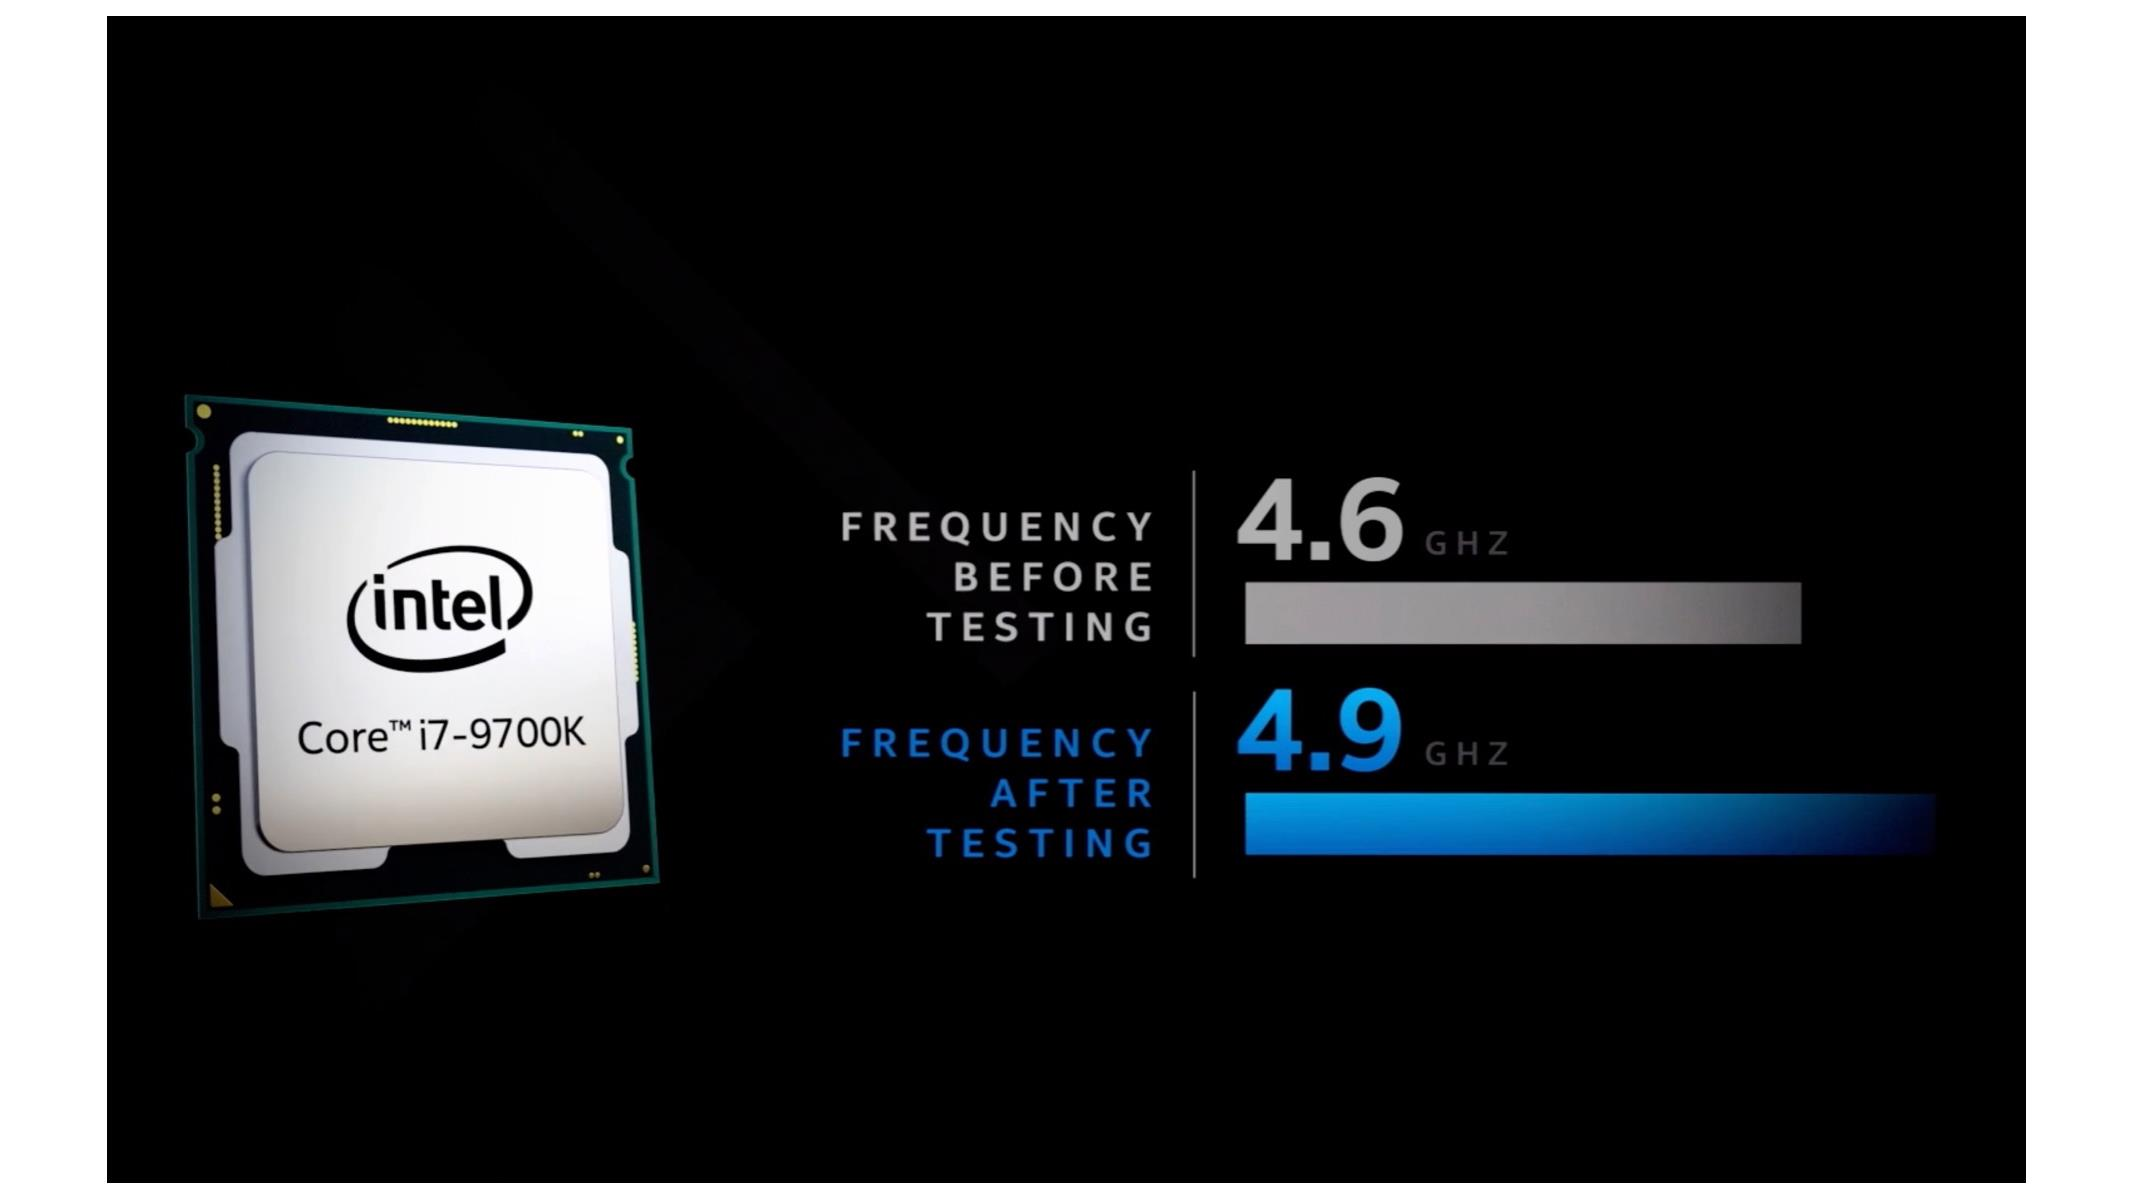 Intel Performance Maximizer App Can Auto-Overclock Your CPU With One